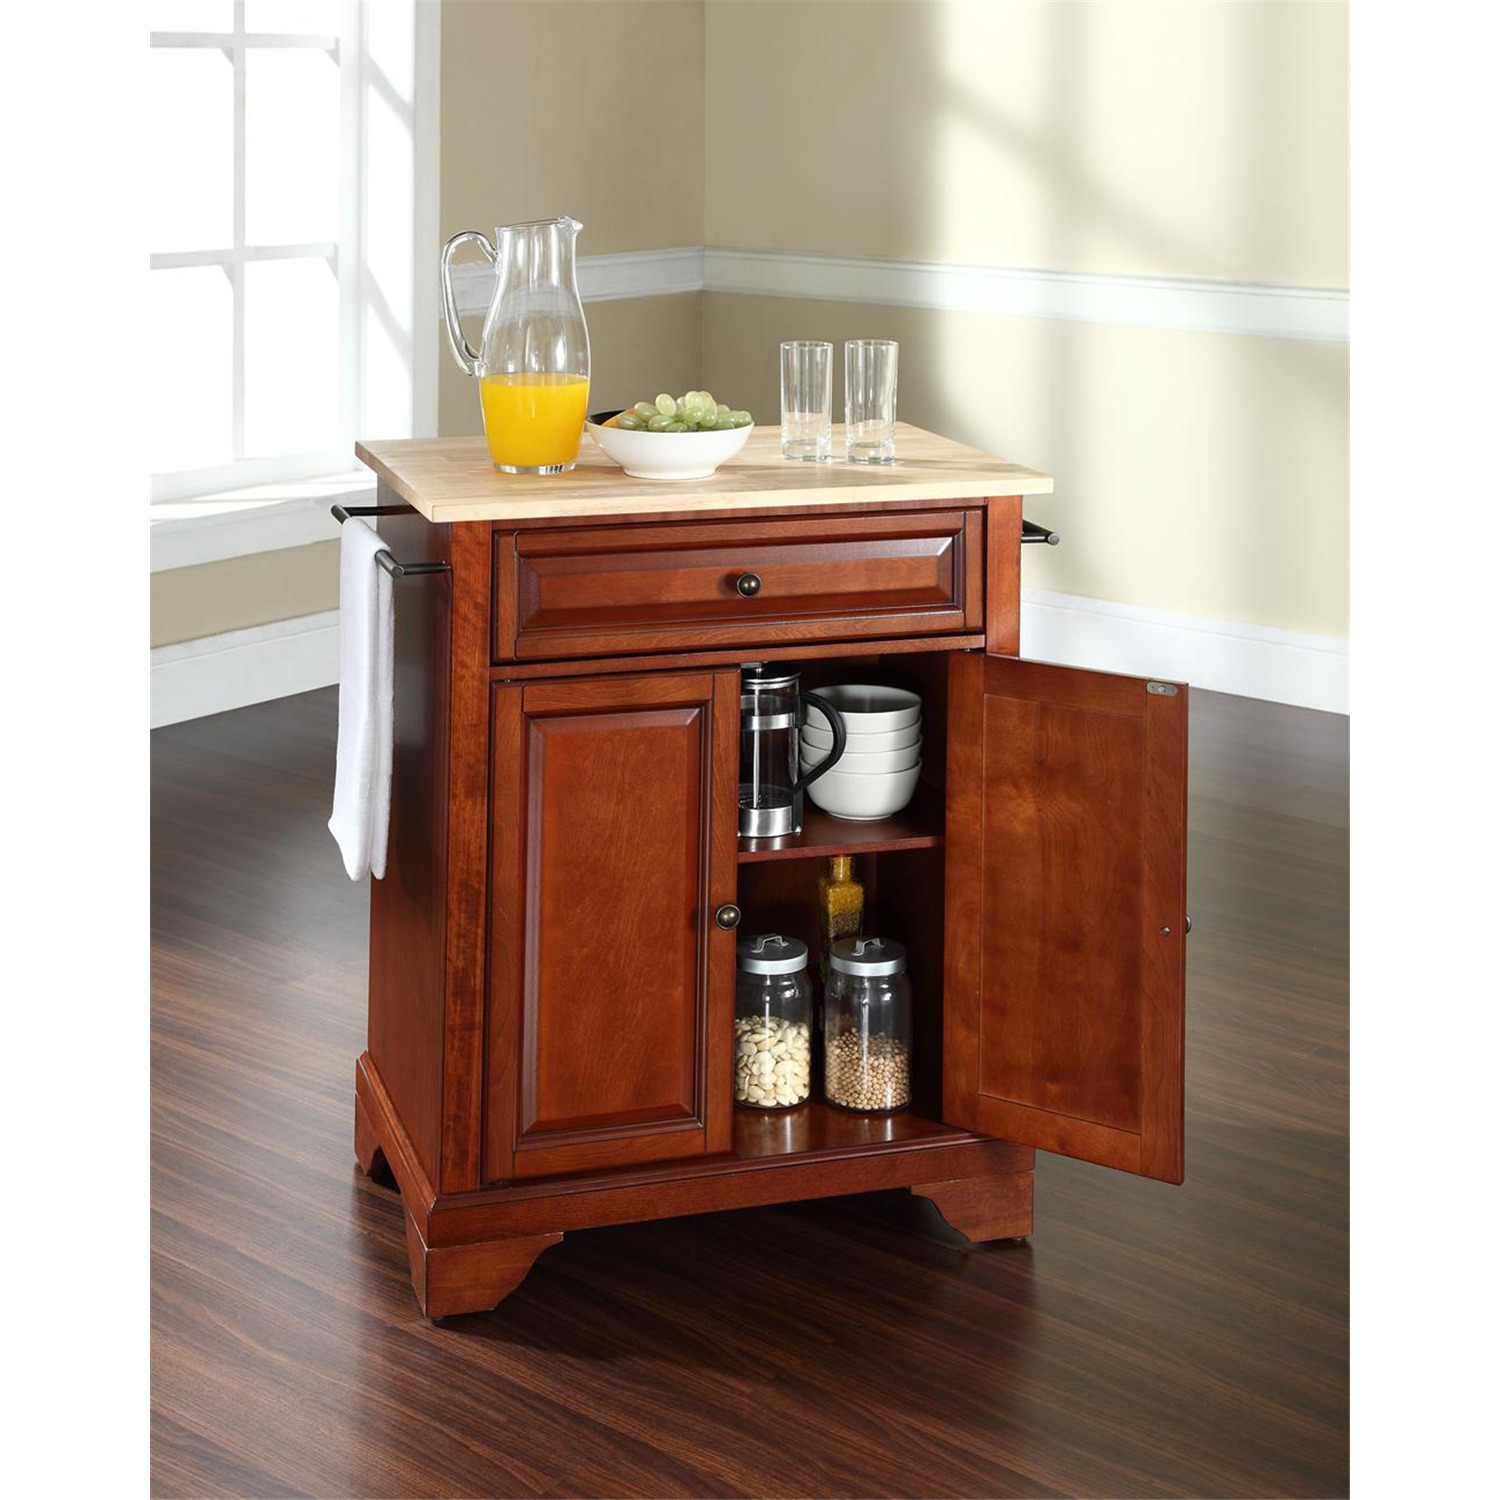 Stainless Steel Kitchen Islands Lafayette Portable Kitchen Island - From $265.00 To $398